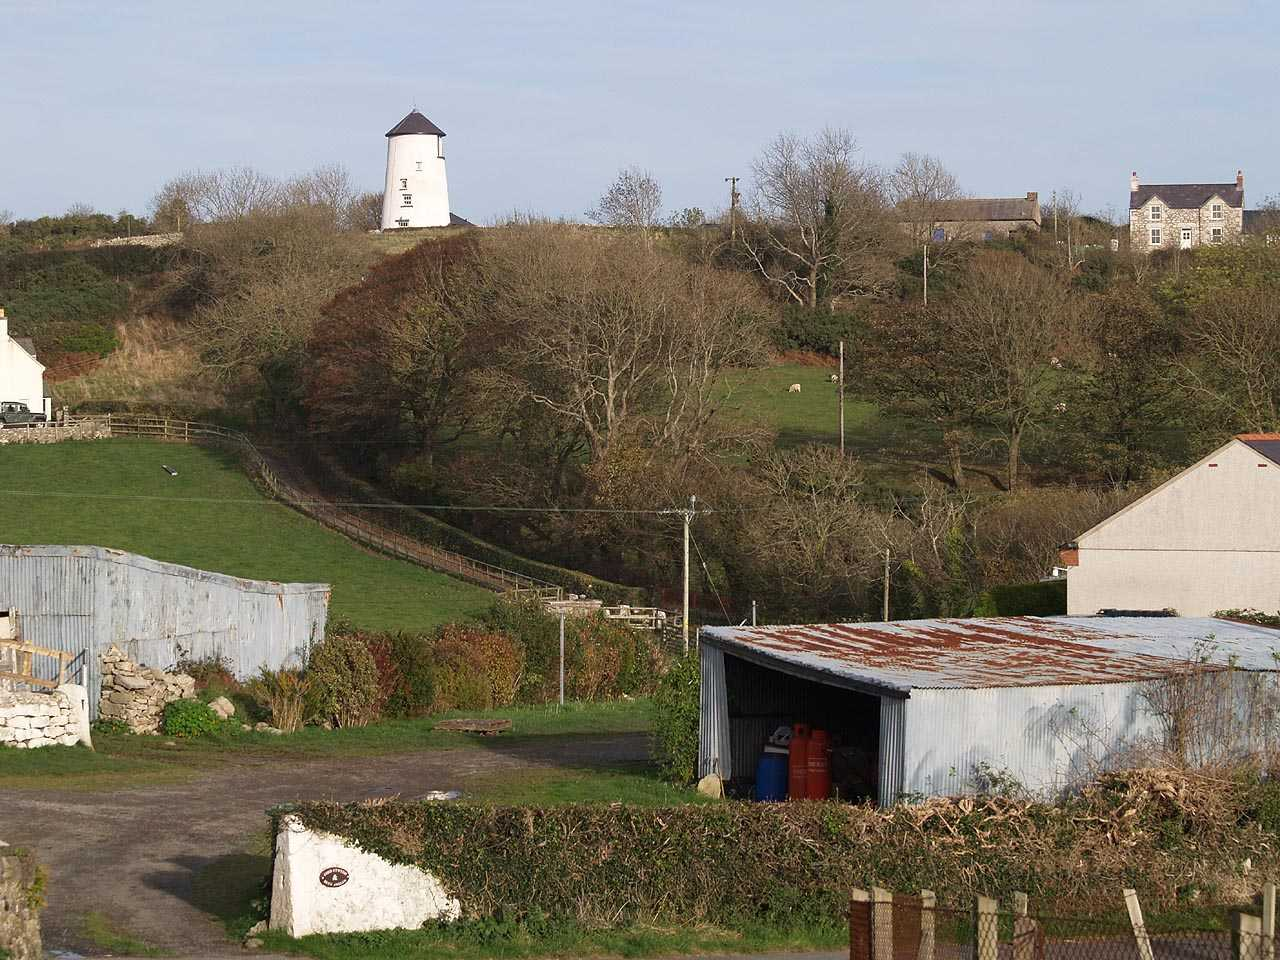 Llangoed, Melin Tros-y-Marian Windmill in a rural surrounding